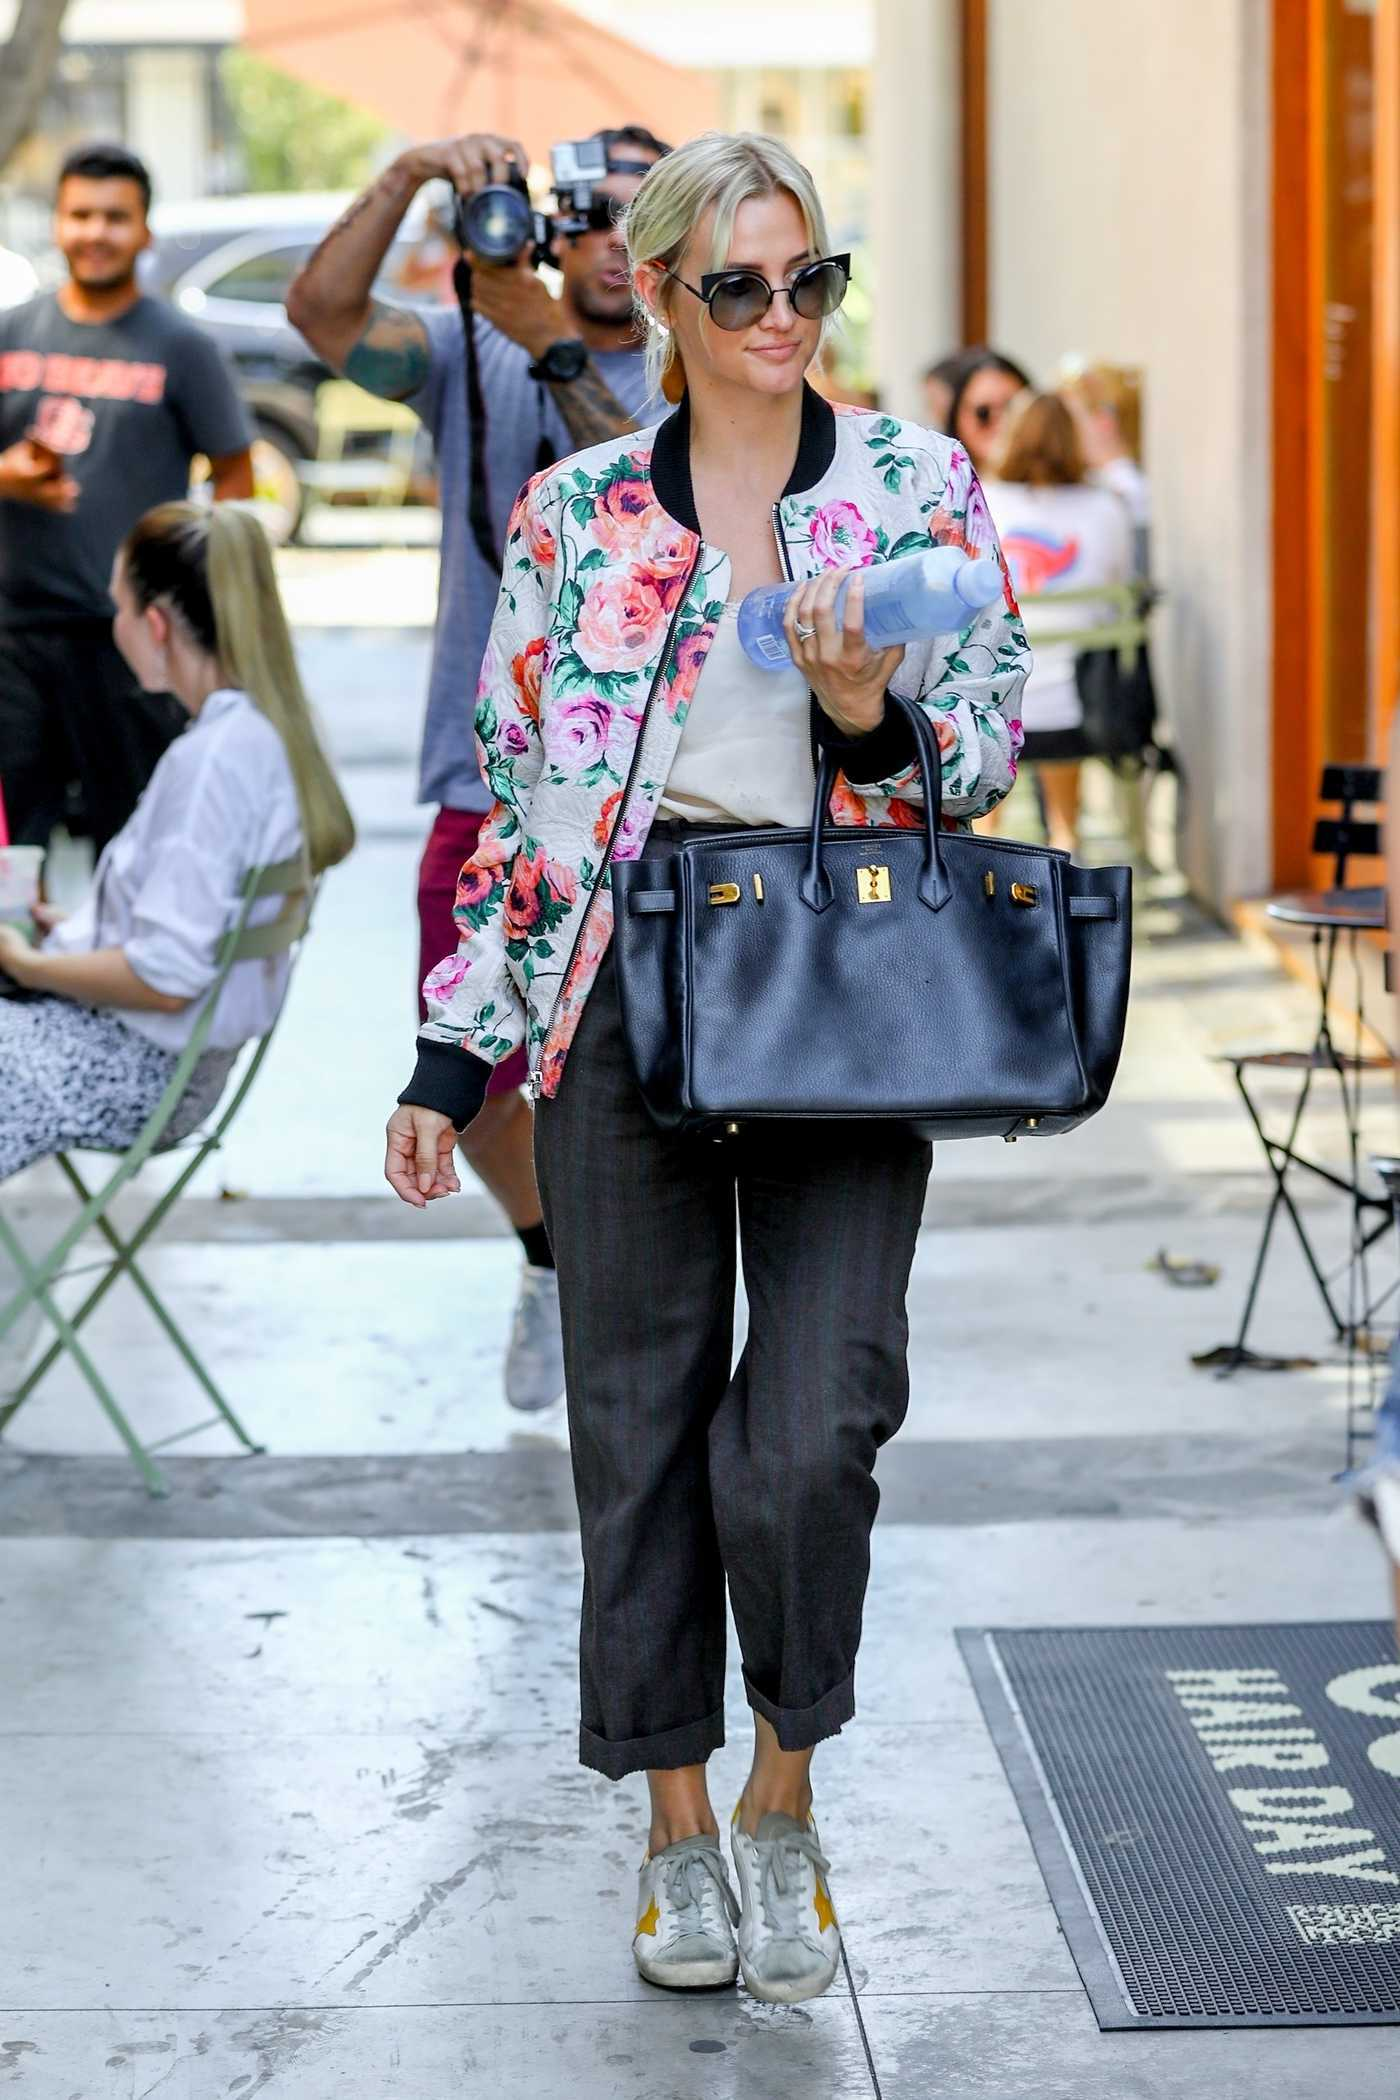 Ashlee Simpson in a Floral Print Bomber Jacket Goes to the Nine Zero One Hair Salon in Los Angeles 07/25/2018